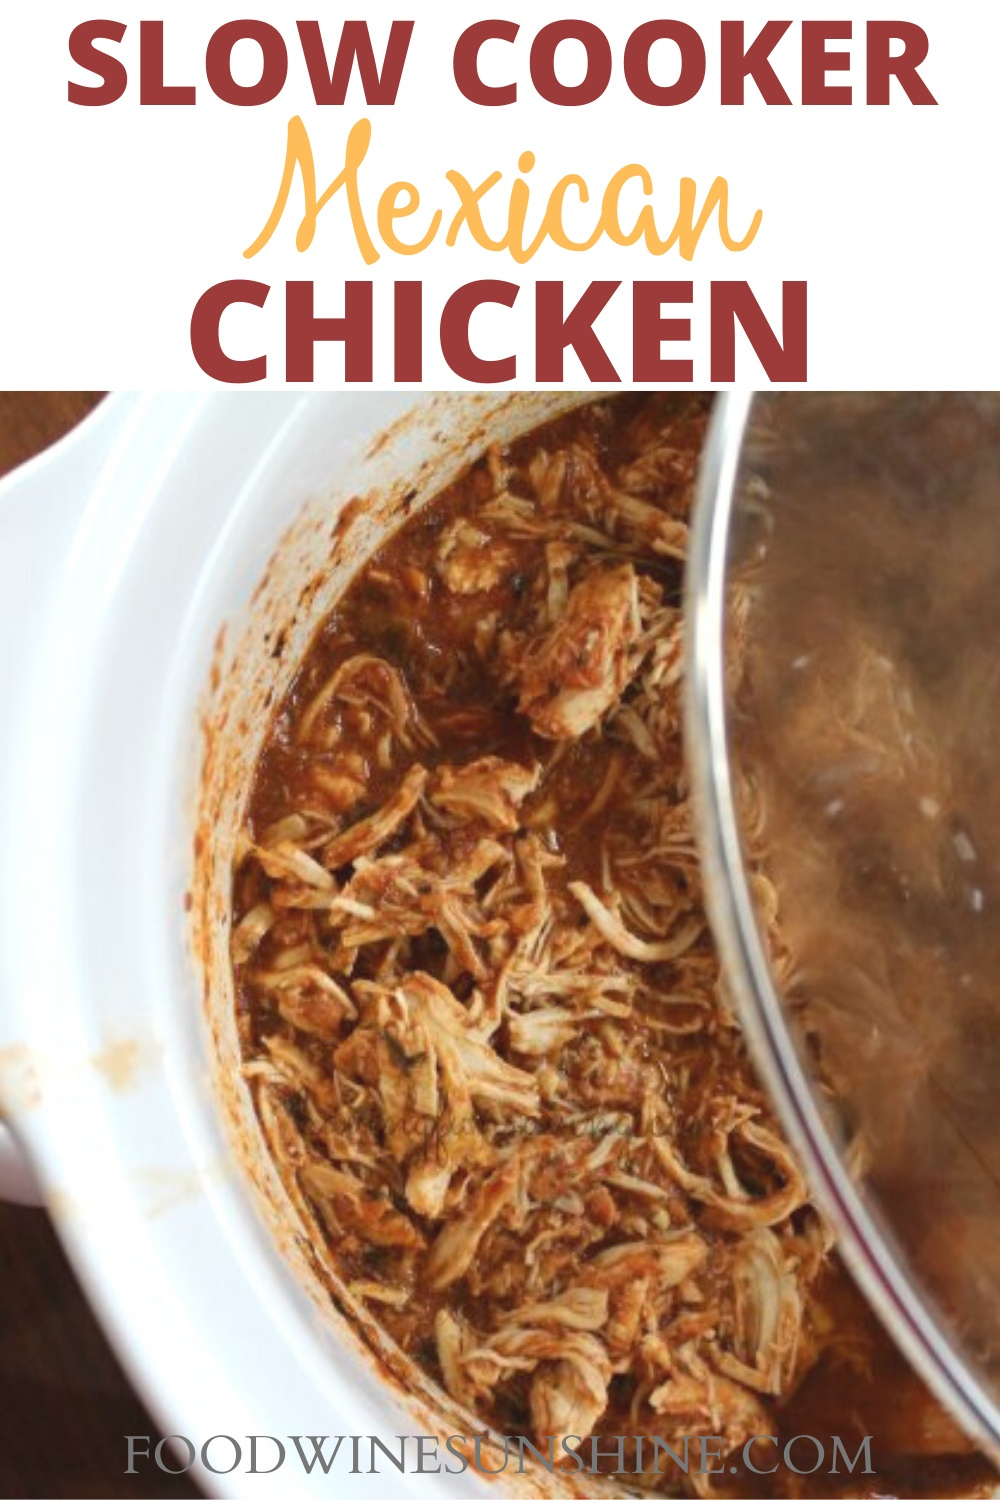 Slow Cooker Mexican Chicken | This Mexican Chicken Recipe has just 5 ingredients, it's easy to make and is low fat. Make Salsa Chicken in the slow cooker for dinner tonight or as a freezer to crockpot meal. Read more dinner recipes, healthy recipes and easy recipes the whole family will love on foodwinesunshine.com | Food Wine Sunshine #easyrecipes #dinnerrecipes #dinnerideas #dinner #foodblog #foodblogger